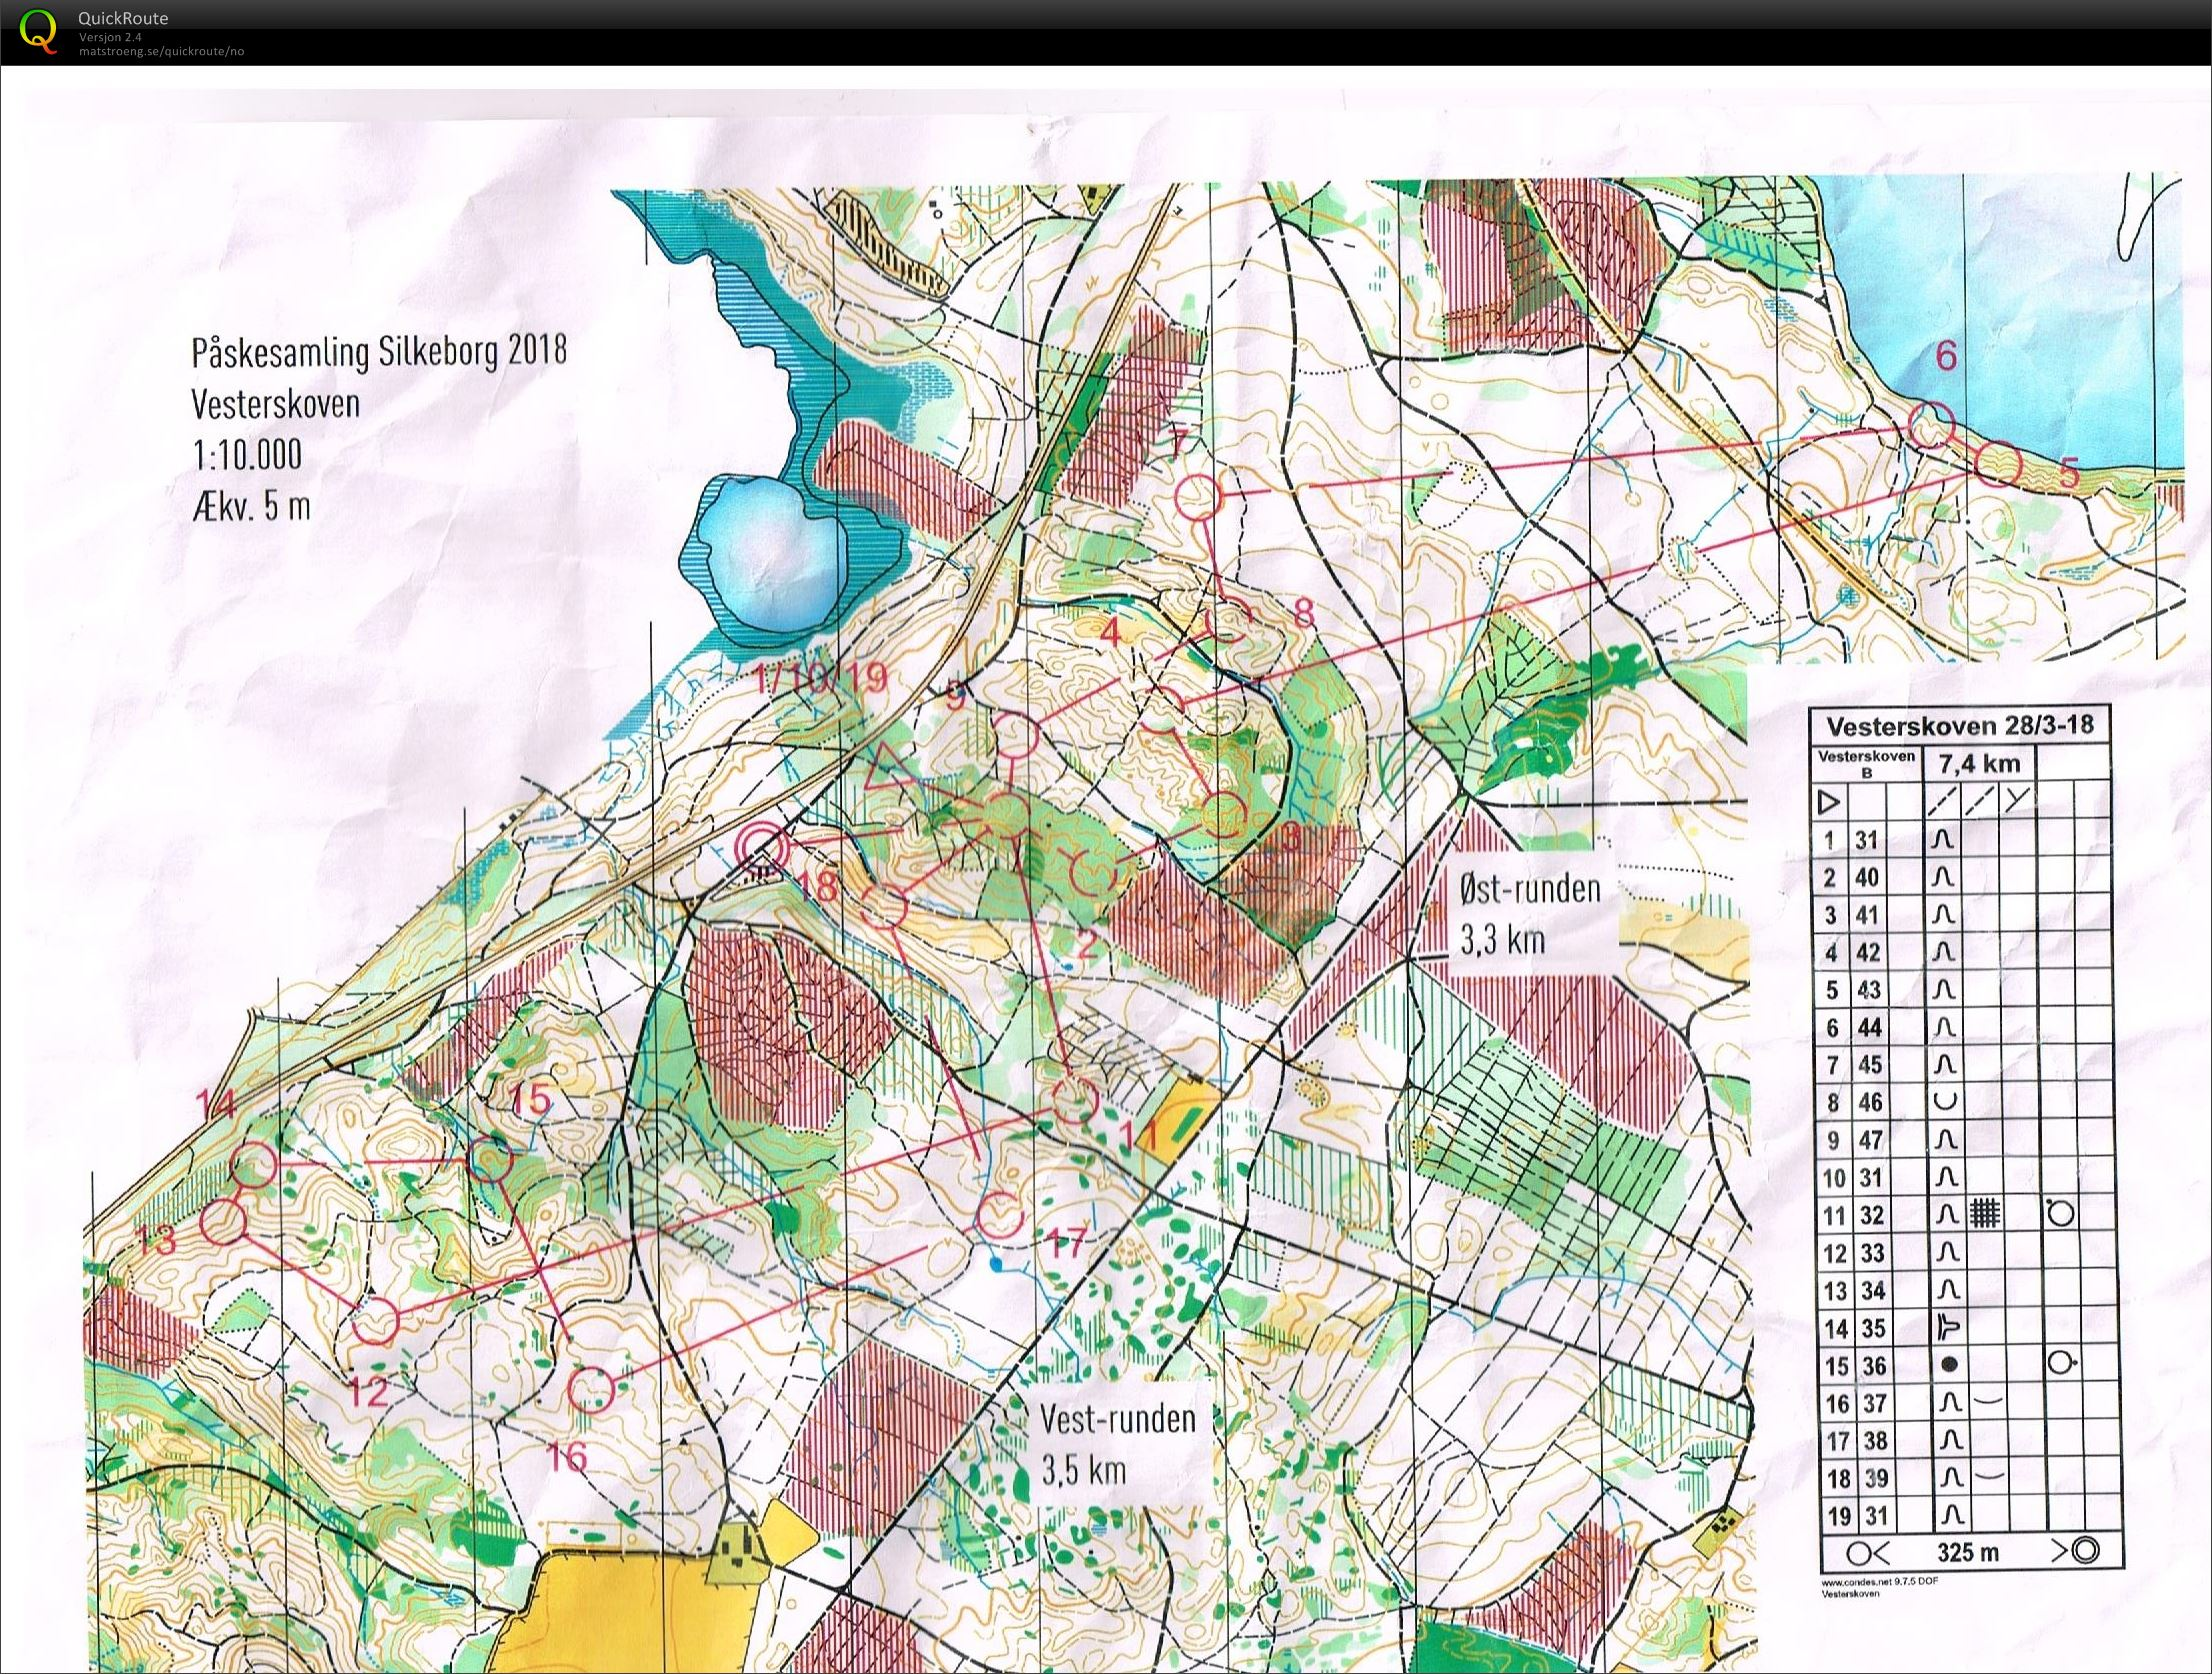 Silkeborg #5 - March 28th 2018 - Orienteering Map from Mia ...